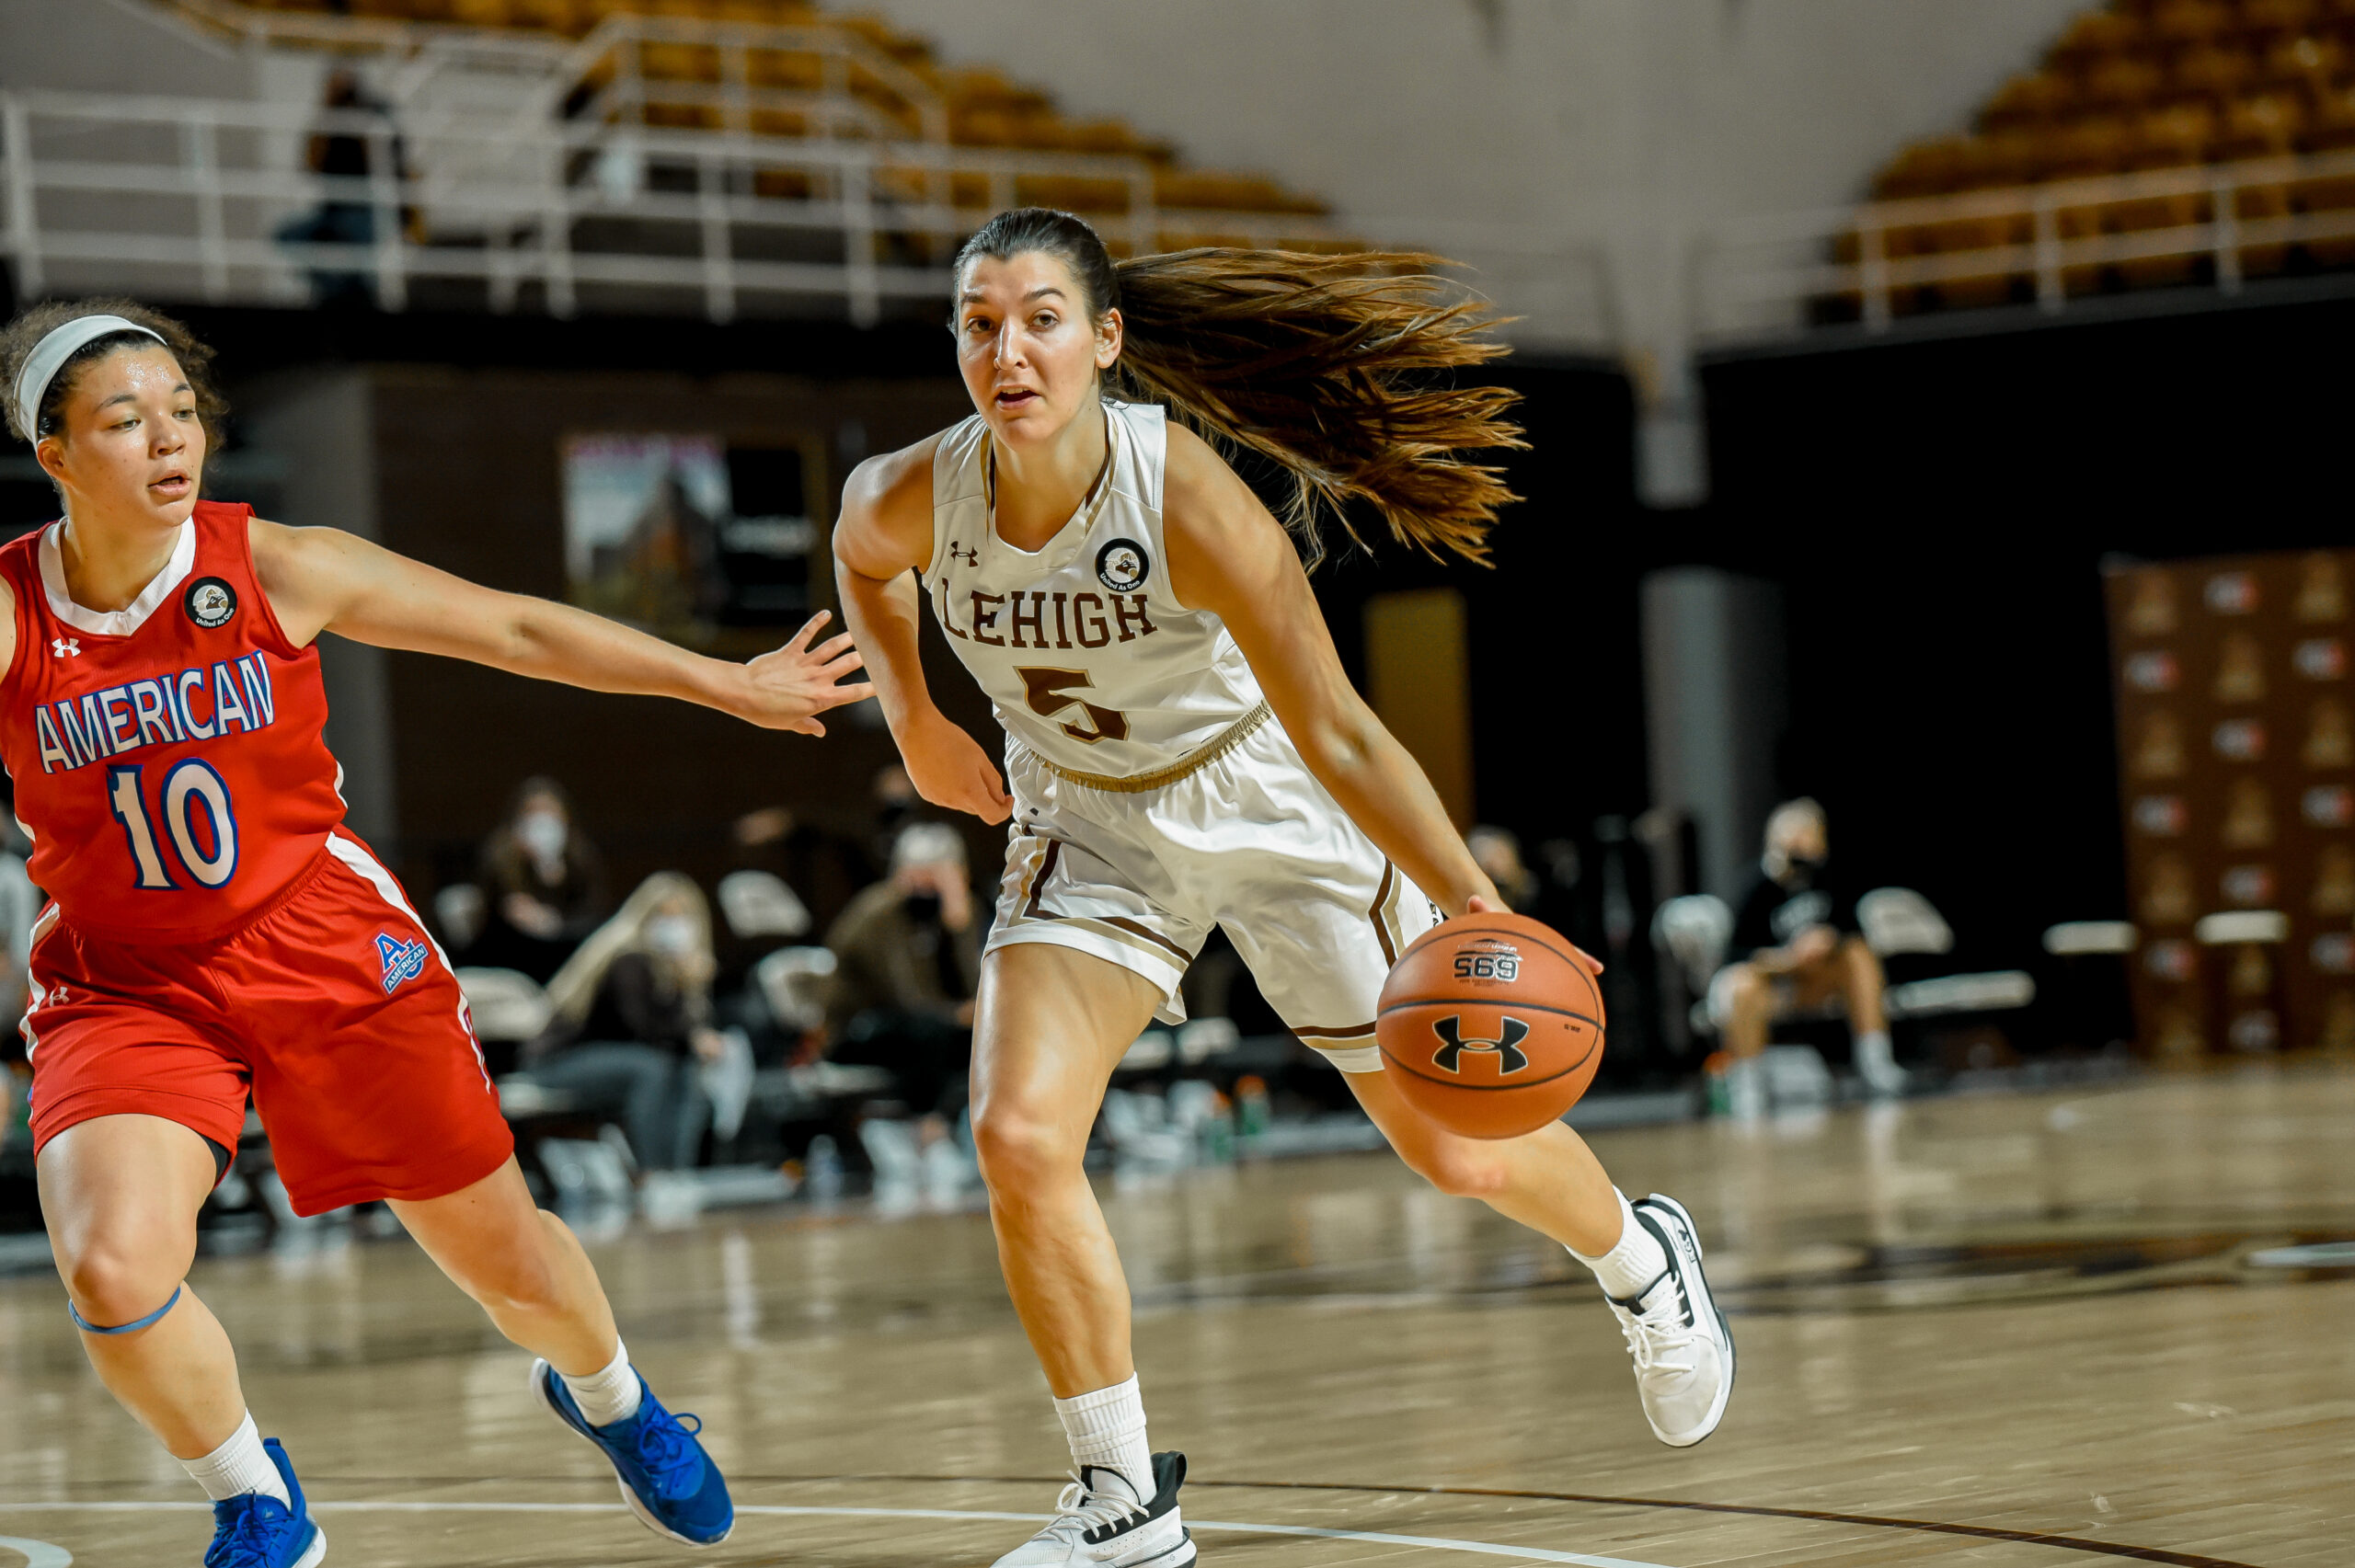 Katie Rice, NCAA, NCAA Tournament, Lehigh